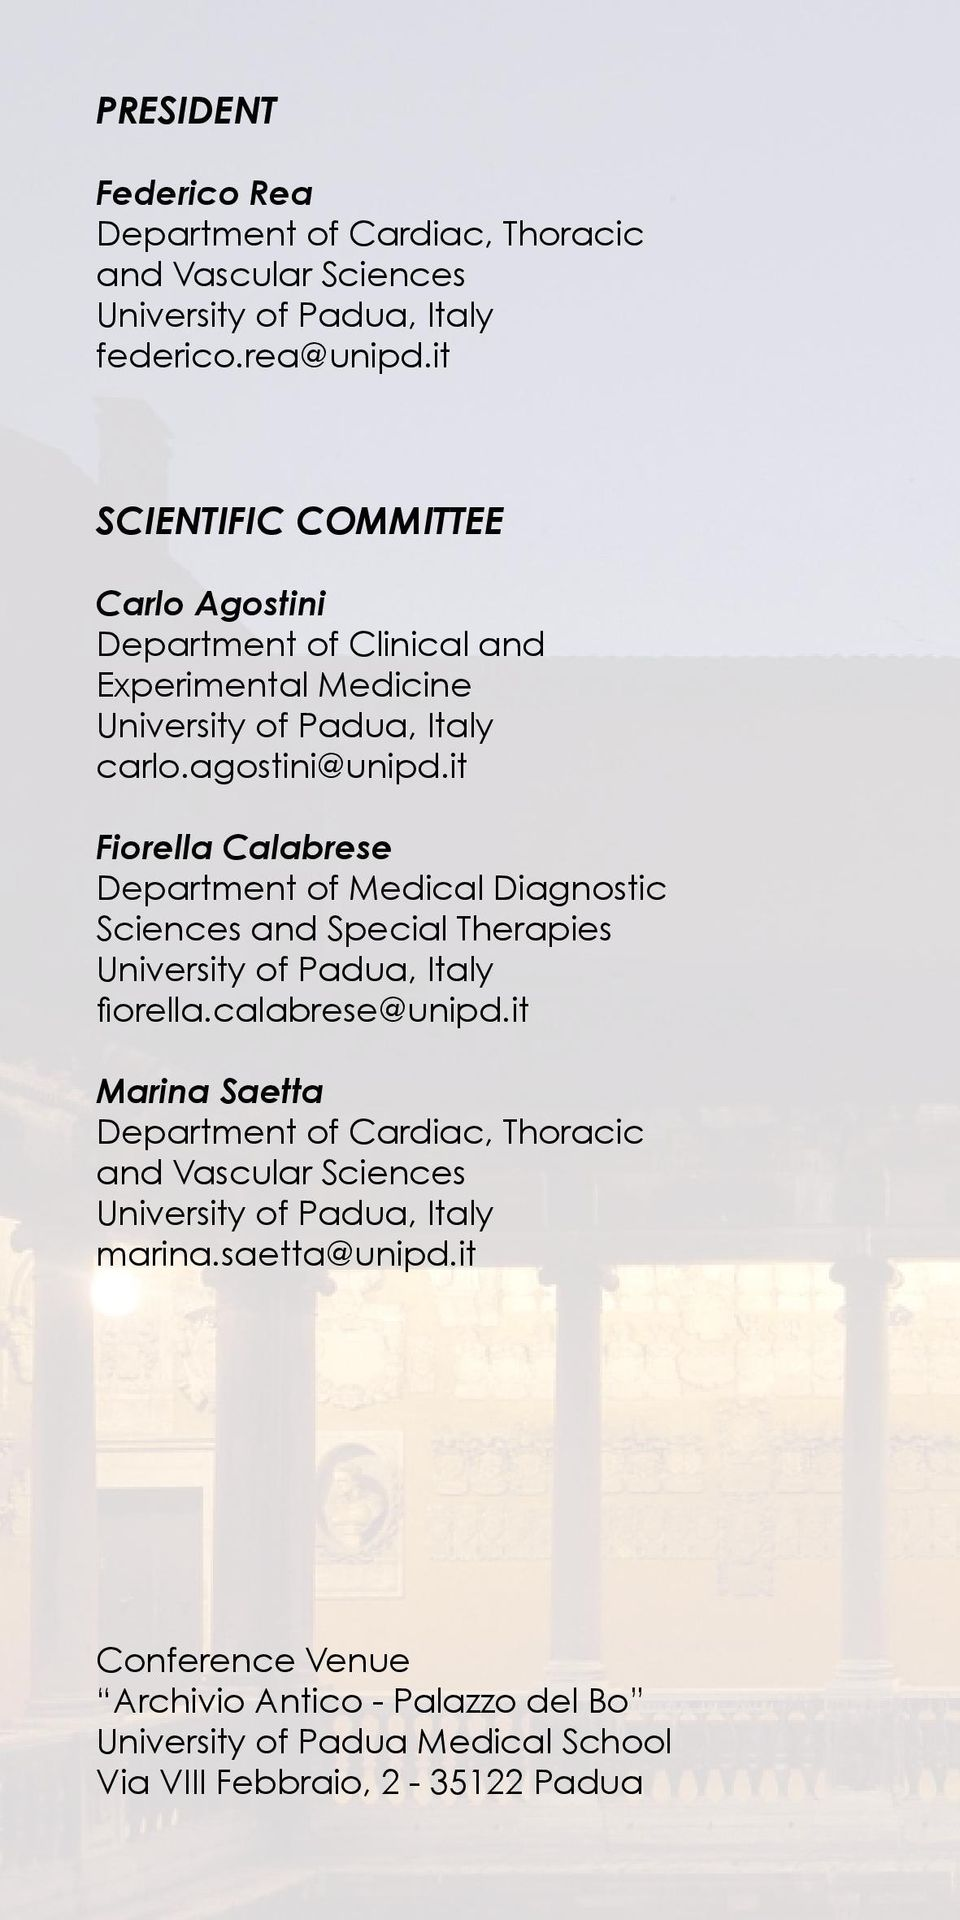 it Fiorella Calabrese Department of Medical Diagnostic Sciences and Special Therapies University of fiorella.calabrese@unipd.